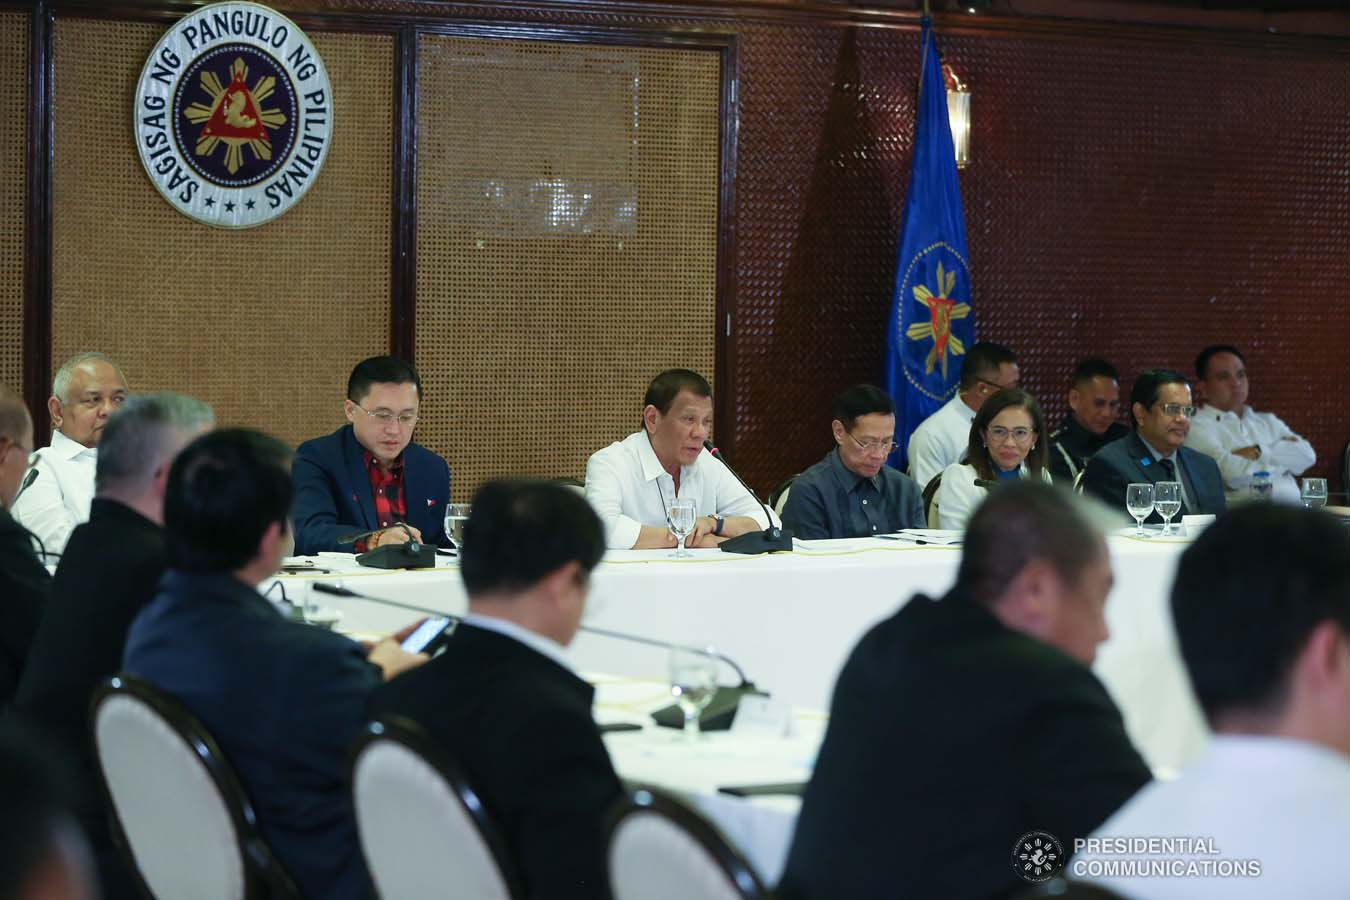 President Rodrigo Roa Duterte answers queries from members of the media during a briefing on the 2019 novel Coronavirus (2019-nCoV) at the Malacañan Palace on February 3, 2020. TOTO LOZANO/PRESIDENTIAL PHOTO